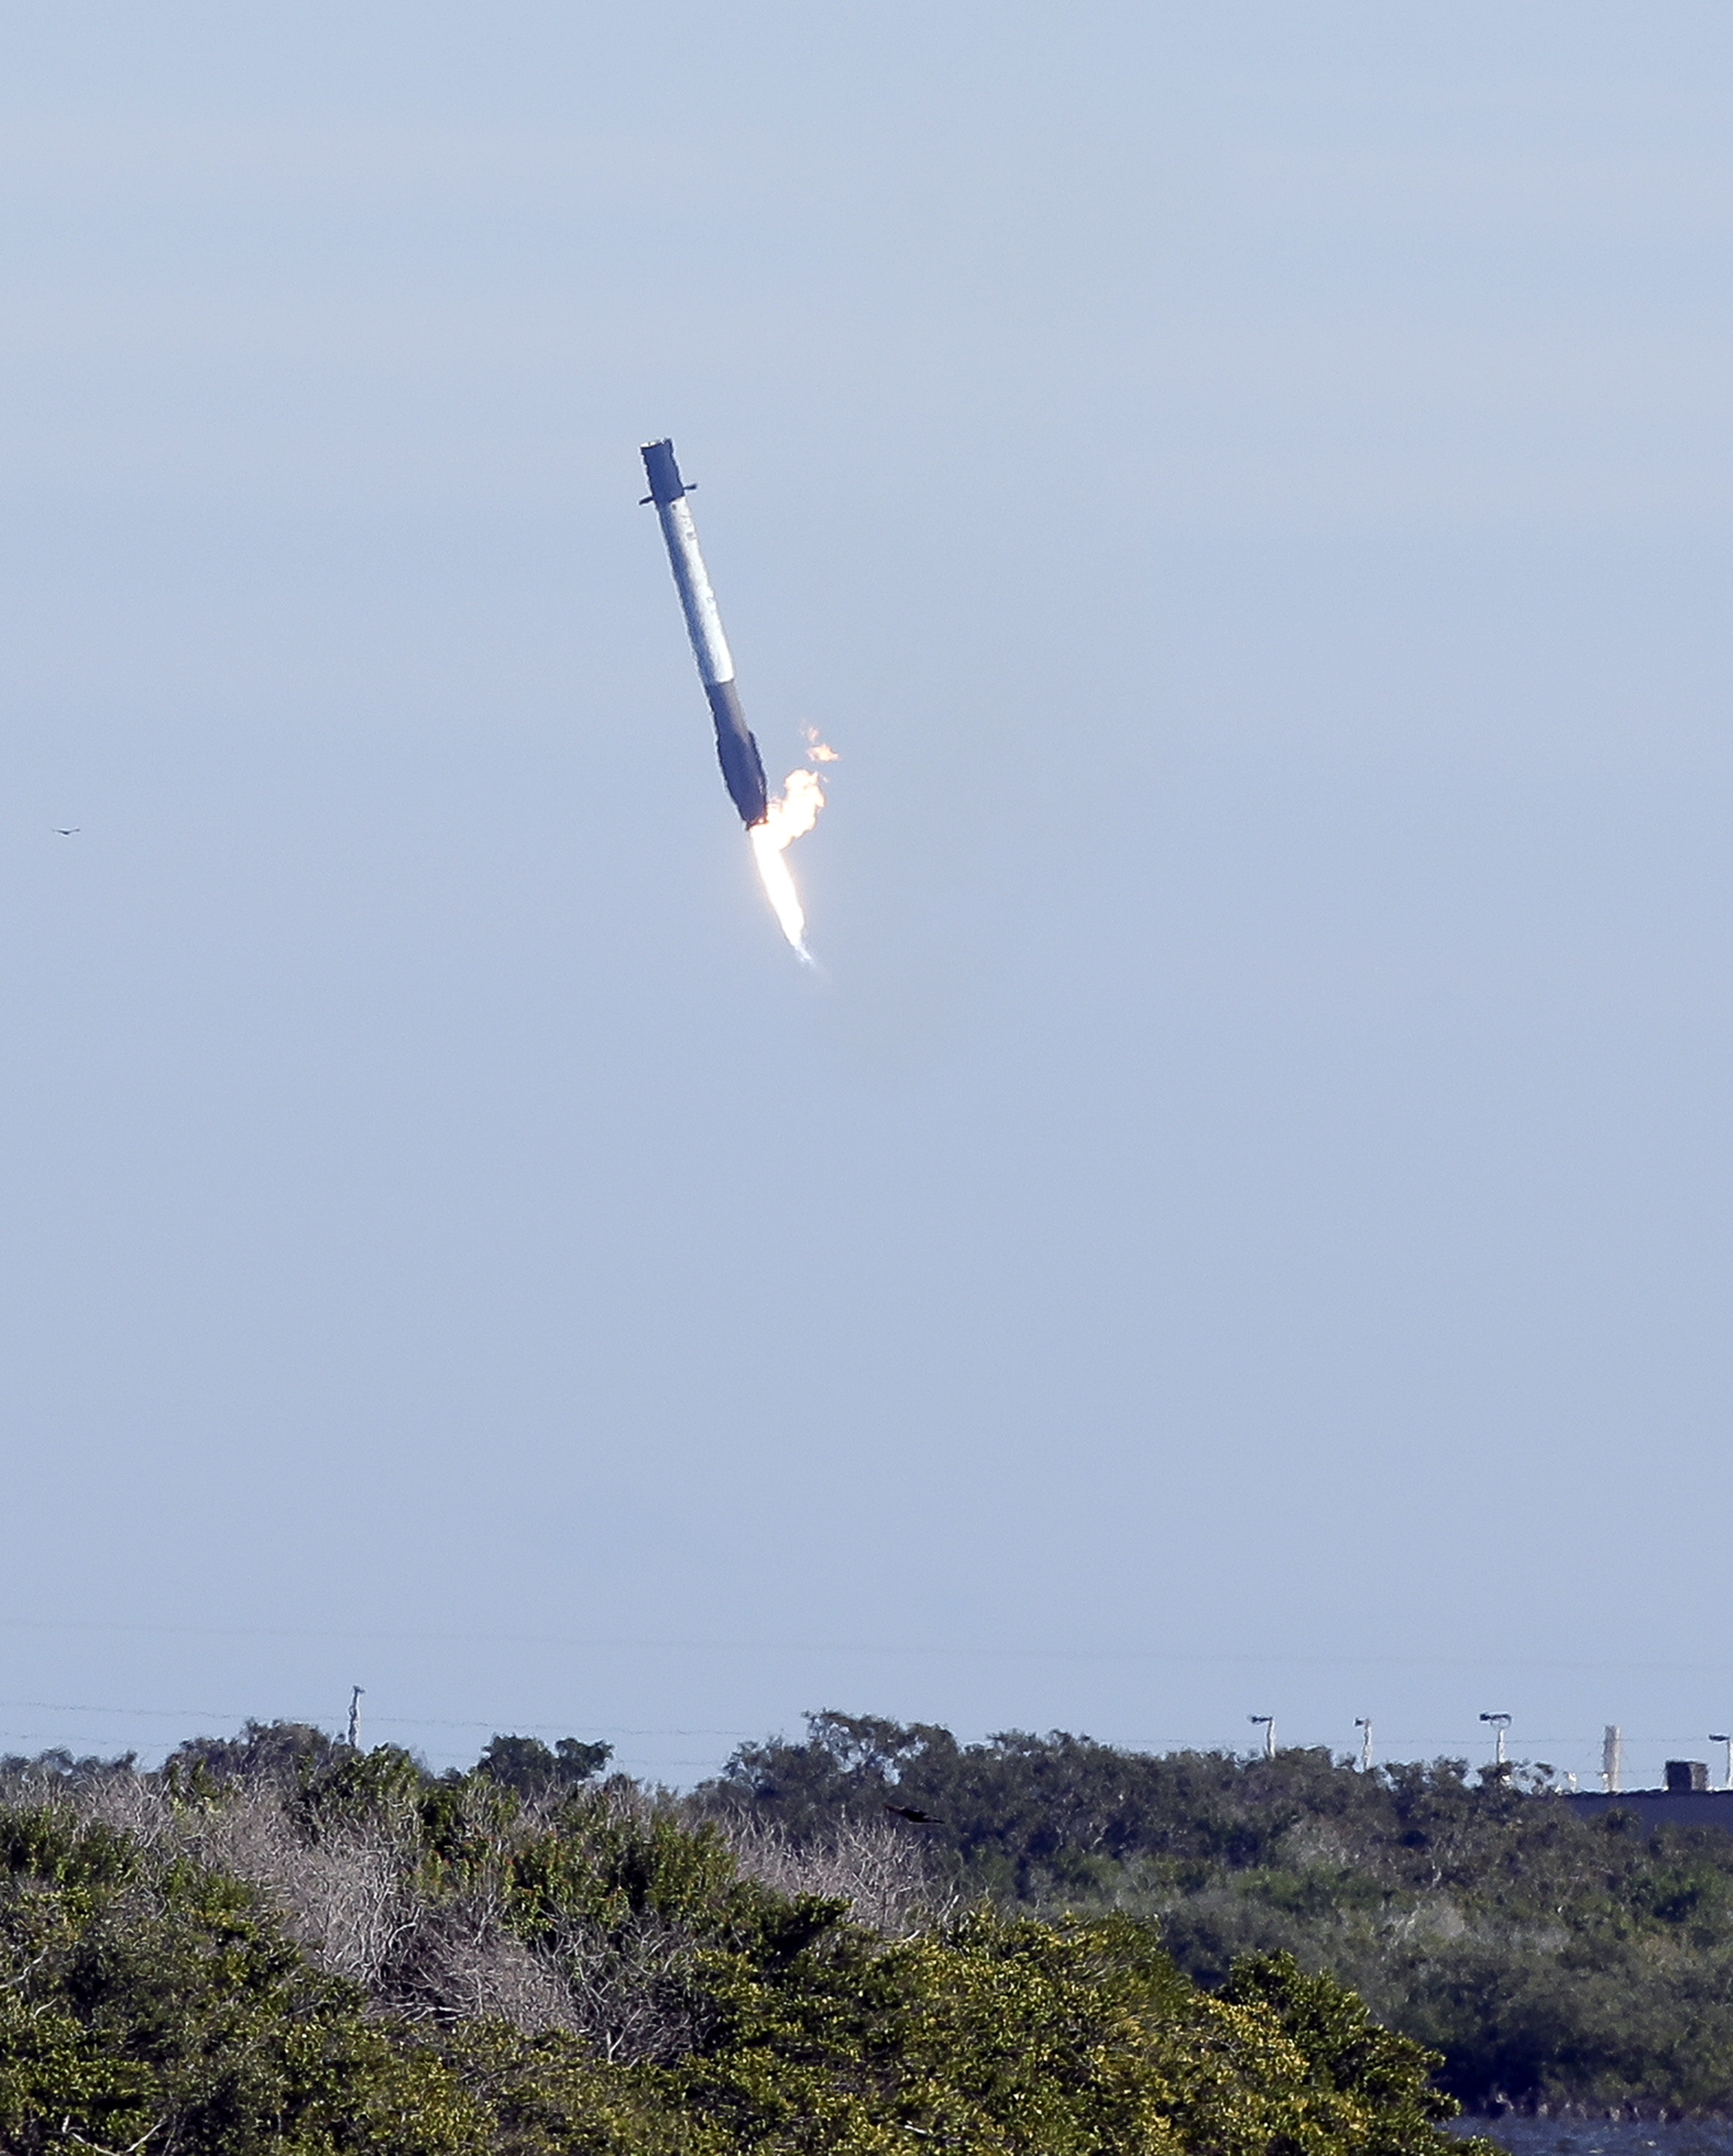 The first stage booster from a Falcon 9 rocket experiences a control problem during its descent, landing in the Atlantic Ocean just east of the launch site instead of a landing zone at the Cape Canaveral Air Force Station in Cape Canaveral, Fla., Wednesday, Dec. 5, 2018. (AP Photo/John Raoux)